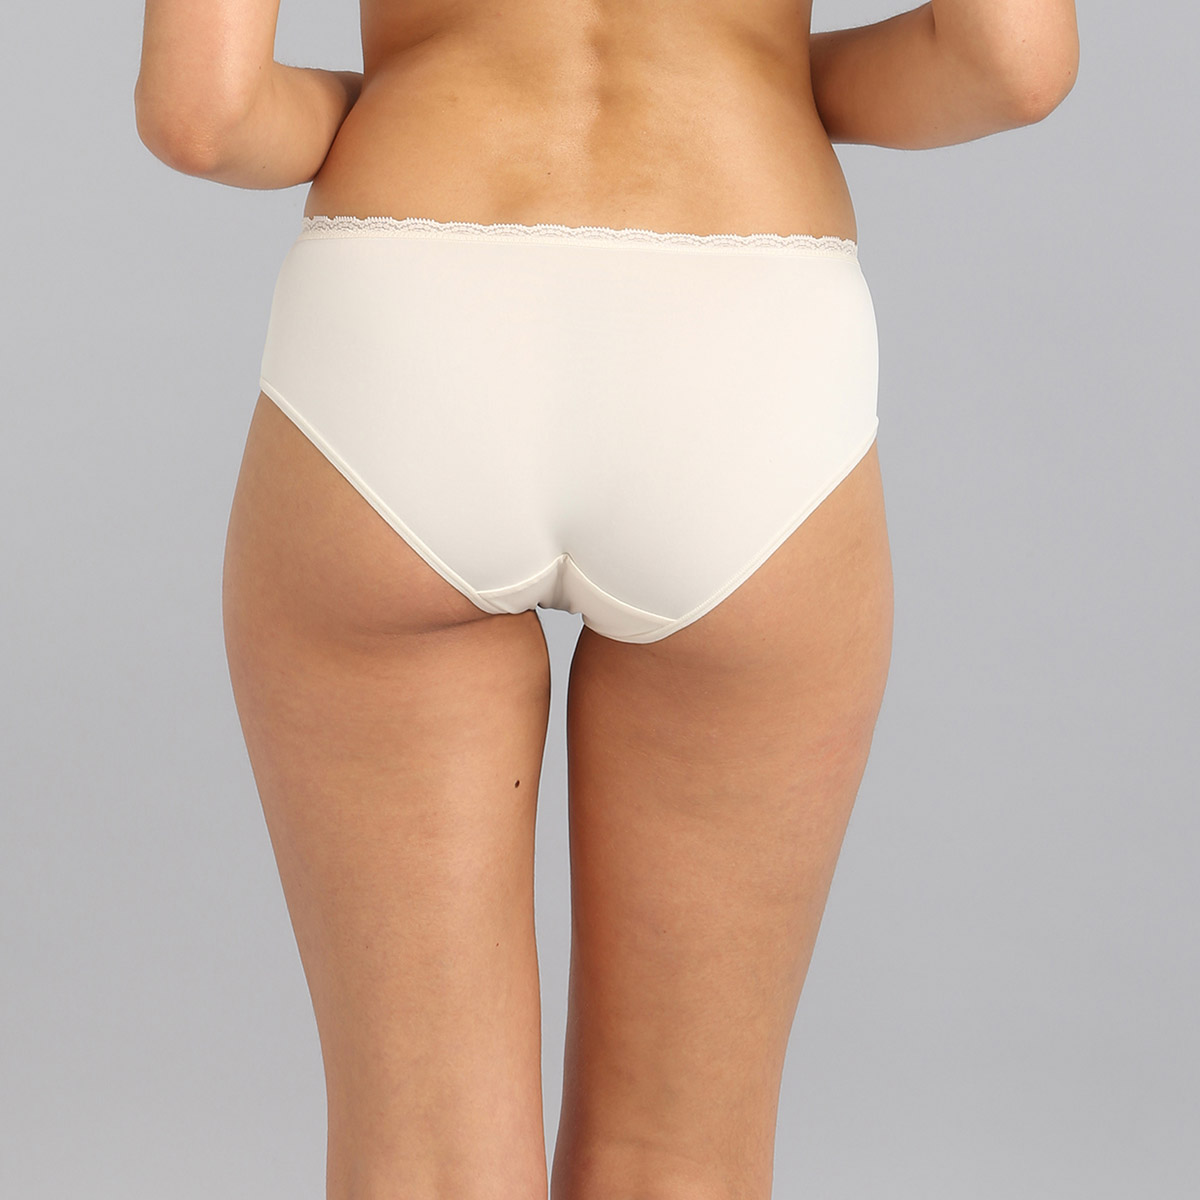 Midi knickers in antique white Ideal Posture, , PLAYTEX